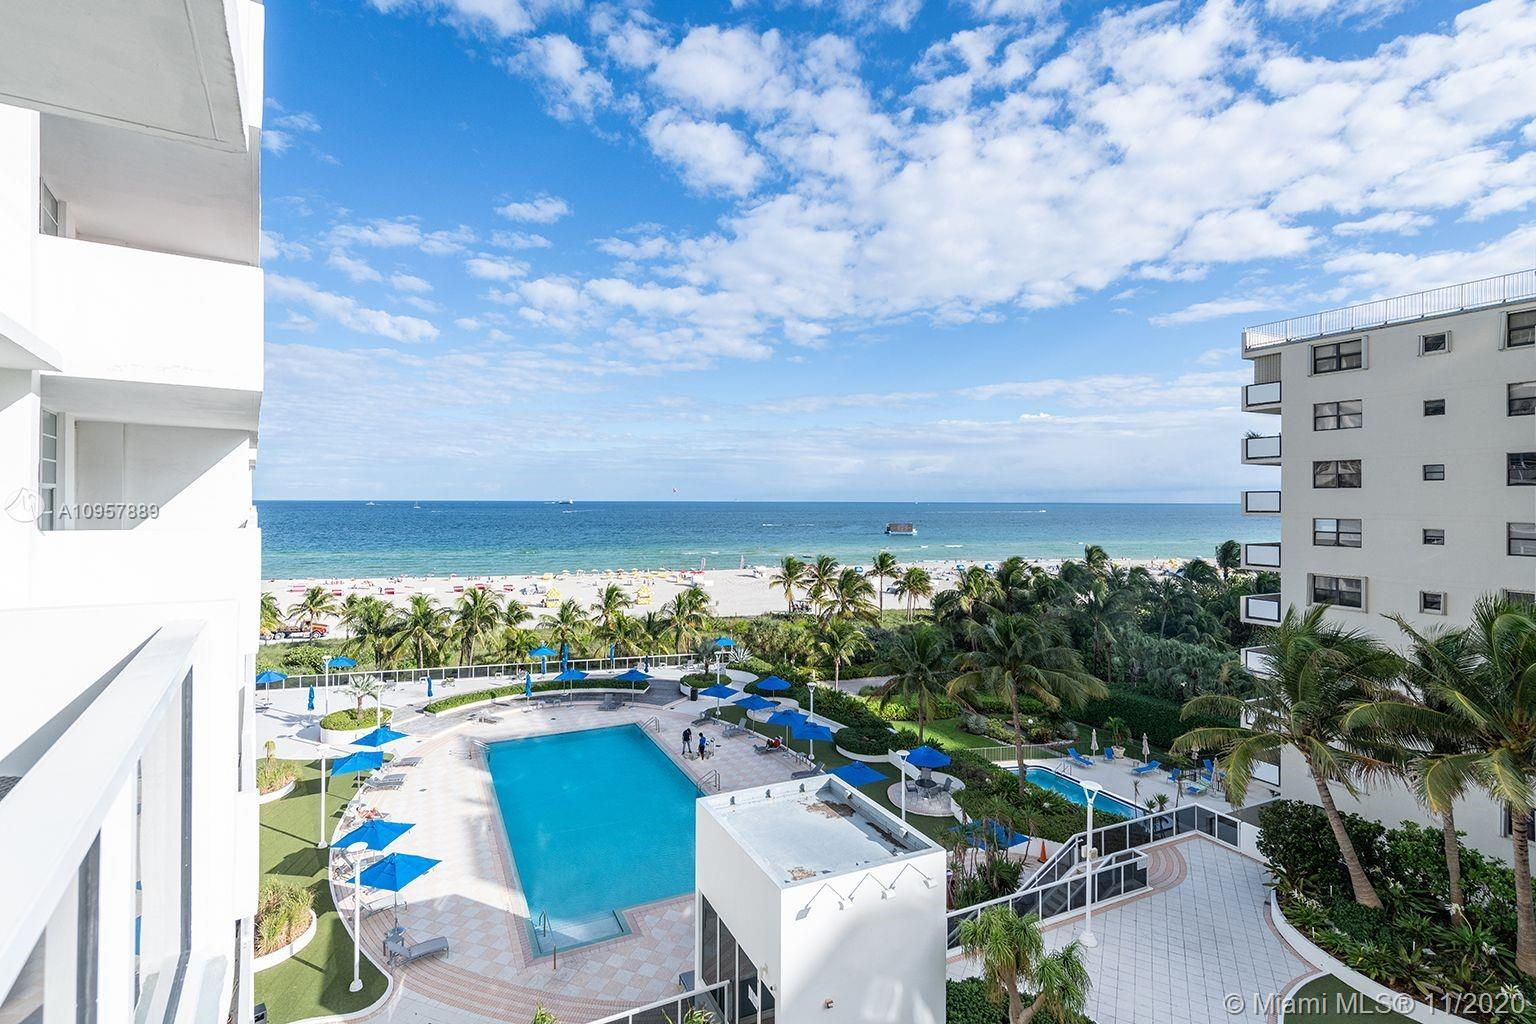 JR. 1 BEDROOM FEATURING A SOUTHEASTERN EXPOSURE WITH AN AMAZING OCEAN VIEW!  IN THE HEART OF SOUTH